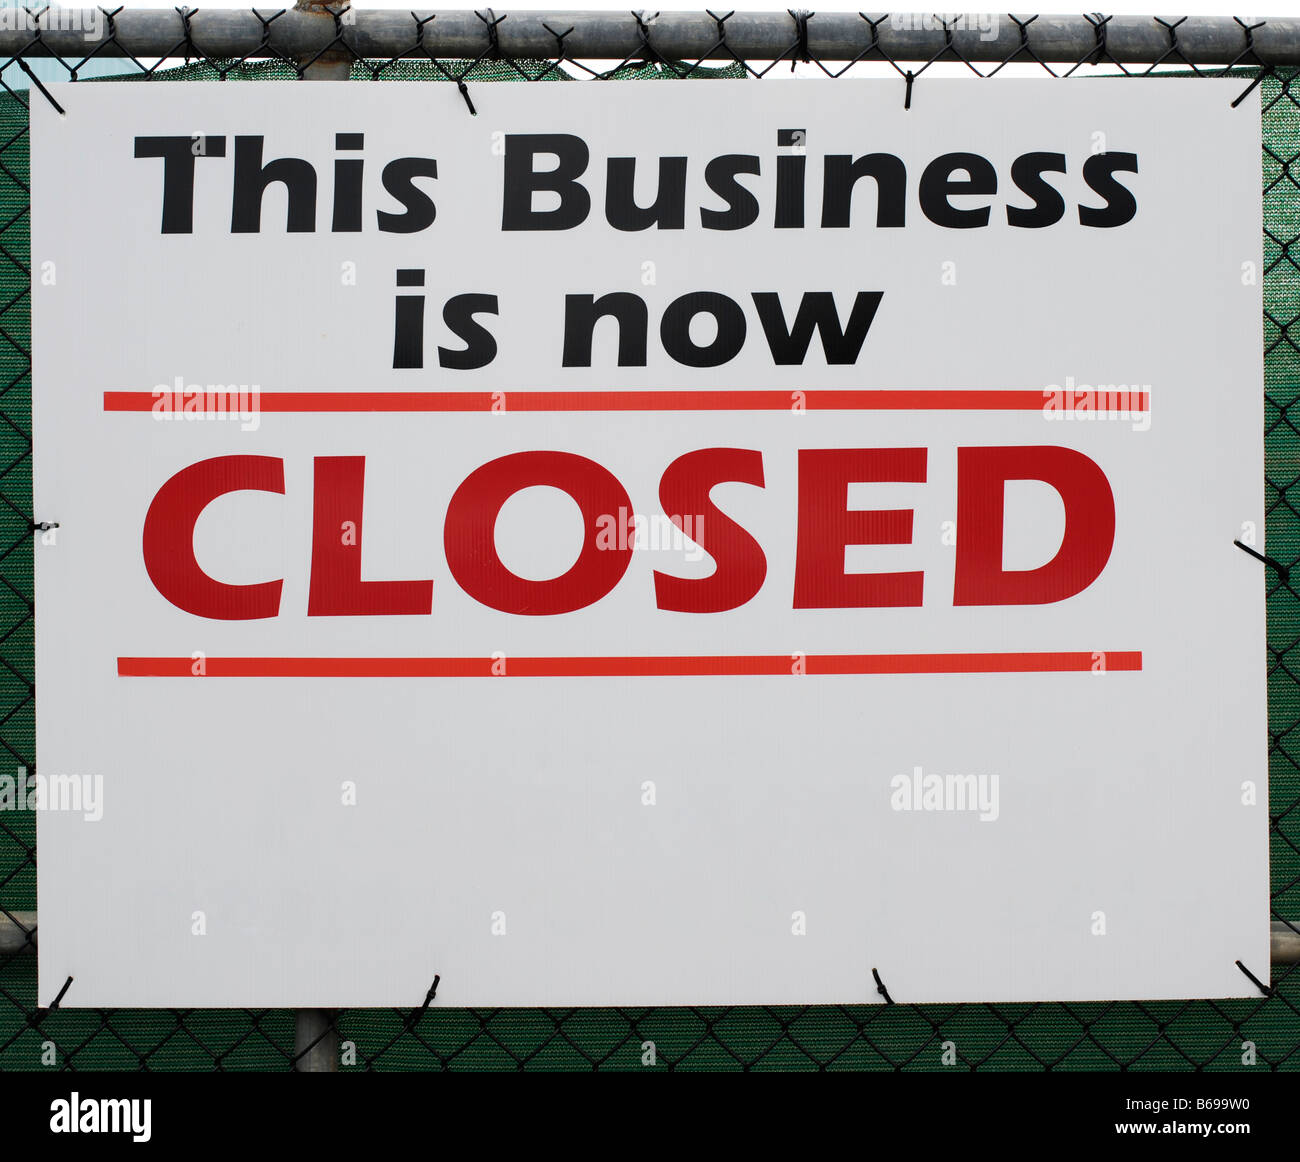 how to close a business